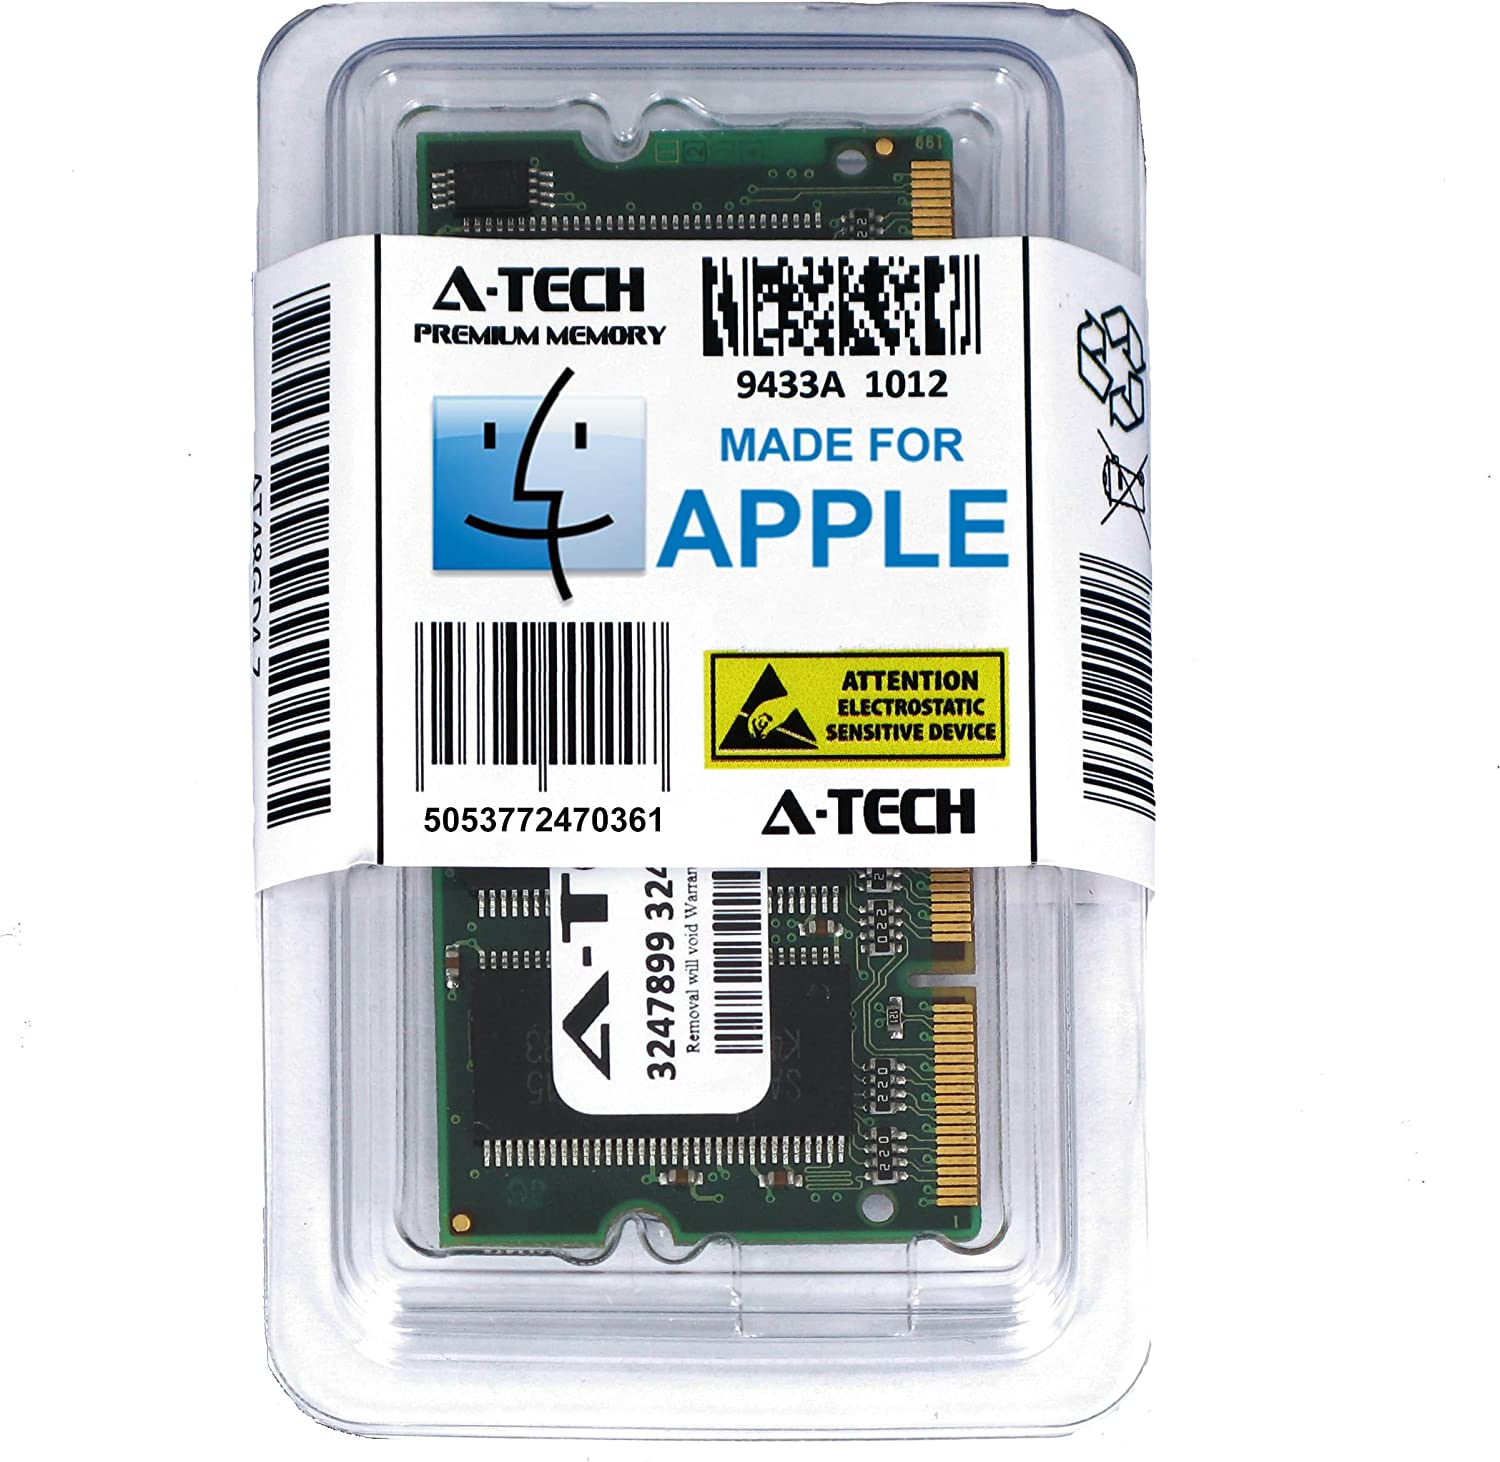 A-Tech for Apple 1GB Module PC2700 333MHz PowerBook G4 PowerBook G4 iBook Early/Mid 2005 M9846LL/A A1133 M9848LL/A A1134 M9183LL/A A1010 M9690LL/A A1104 M9689LL/A A1107 Memory RAM